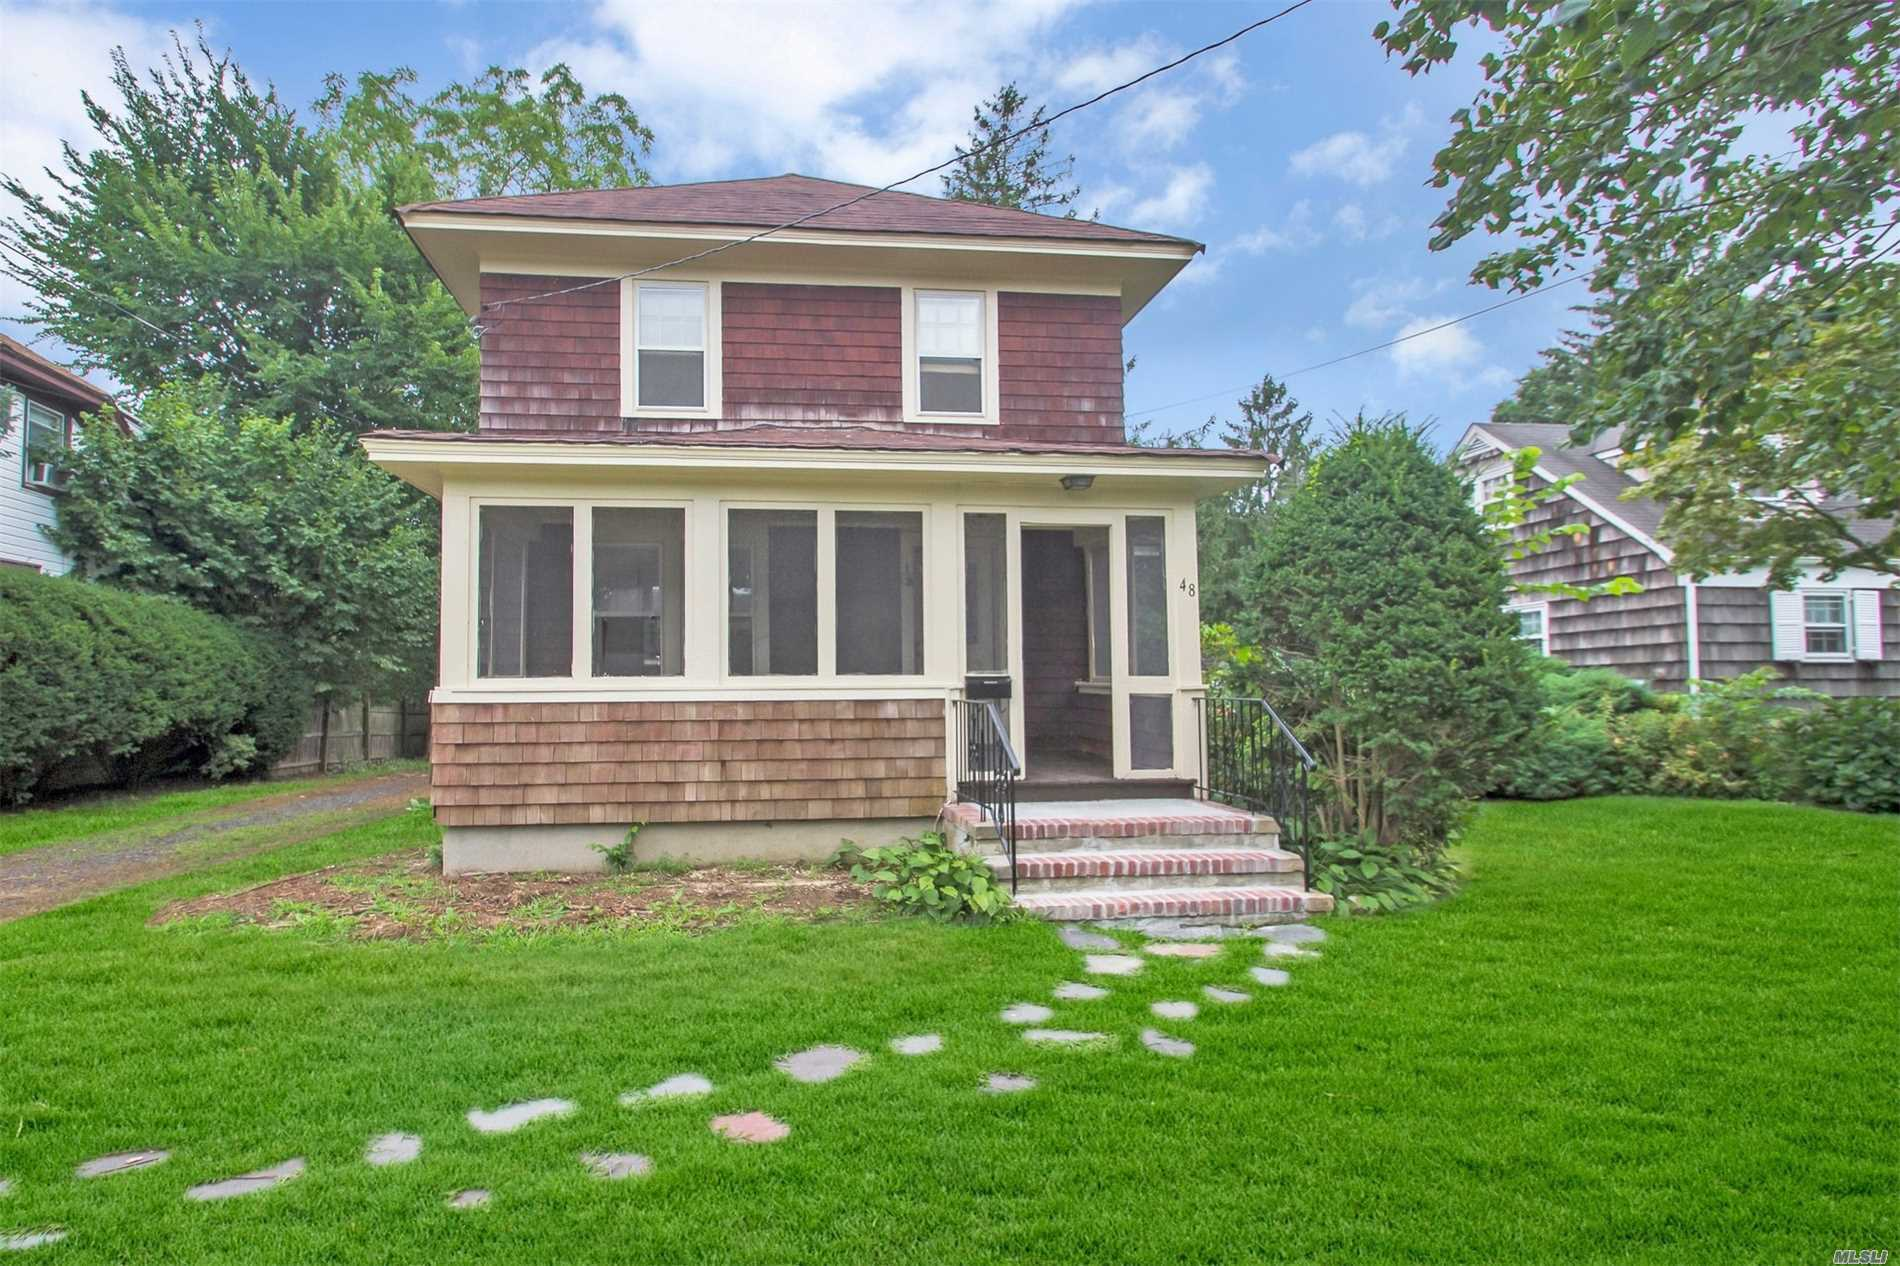 3 Bedroom Colonial In Very Desirable Presidential Section Of Babylon Village.48 Lincoln St Boasts Enclosed Front Porch, Hardwood Floors, Door Mouldings, Cast Iron Radiators, House Equipped With Natural Gas, Large Bedrooms, Great Yard Space. Full Basement, Large 1.5 Car Garage, And Large Granny Attic